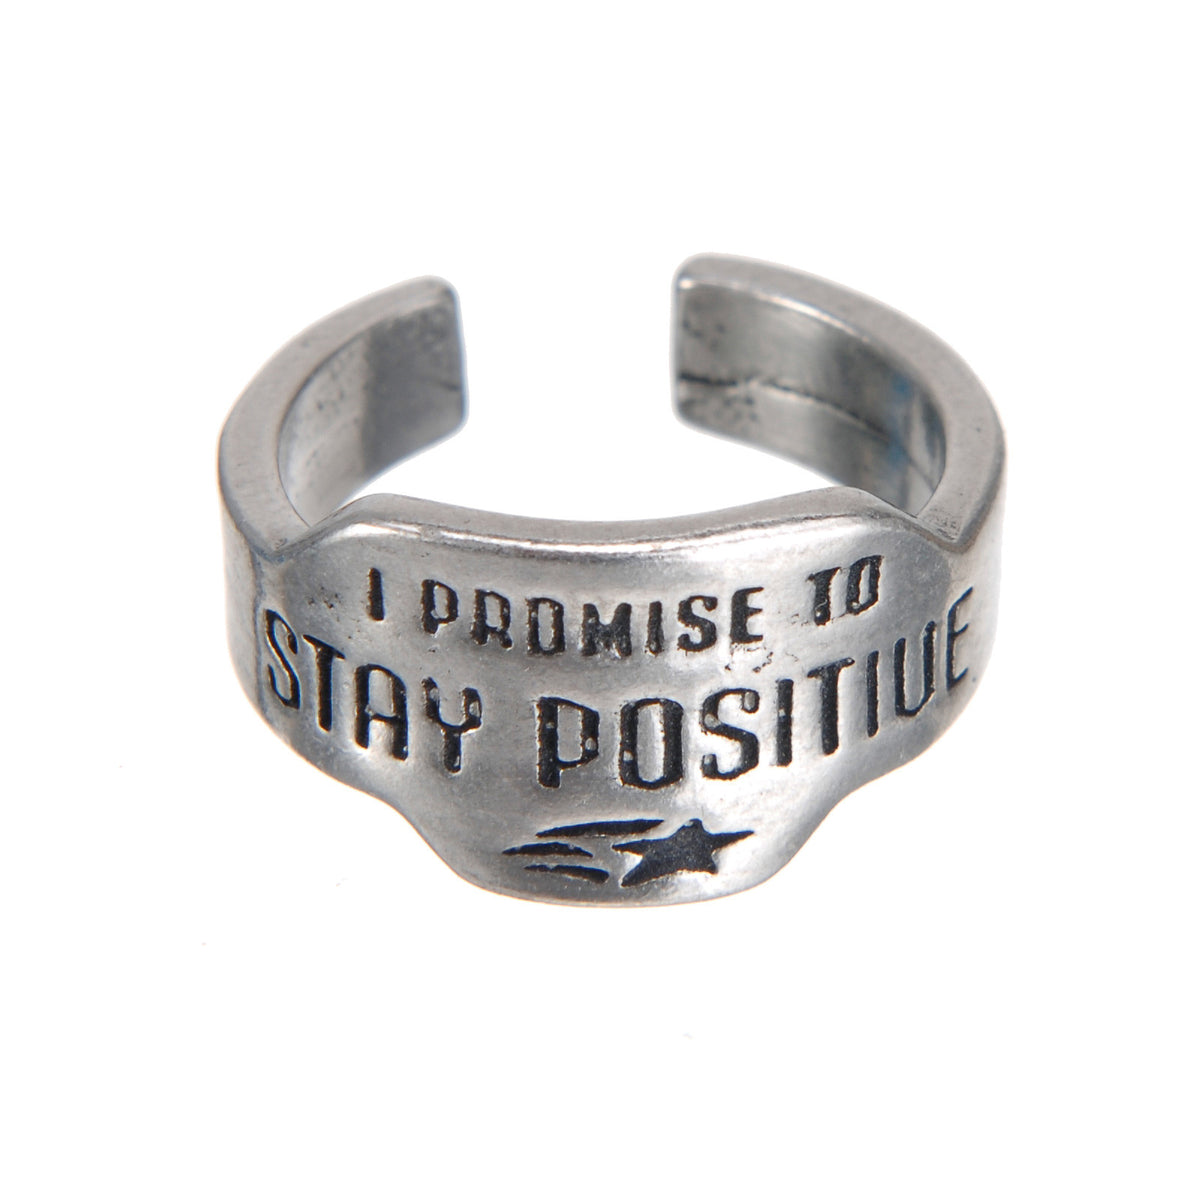 Stay Positive Promise Ring - Whitney Howard Designs